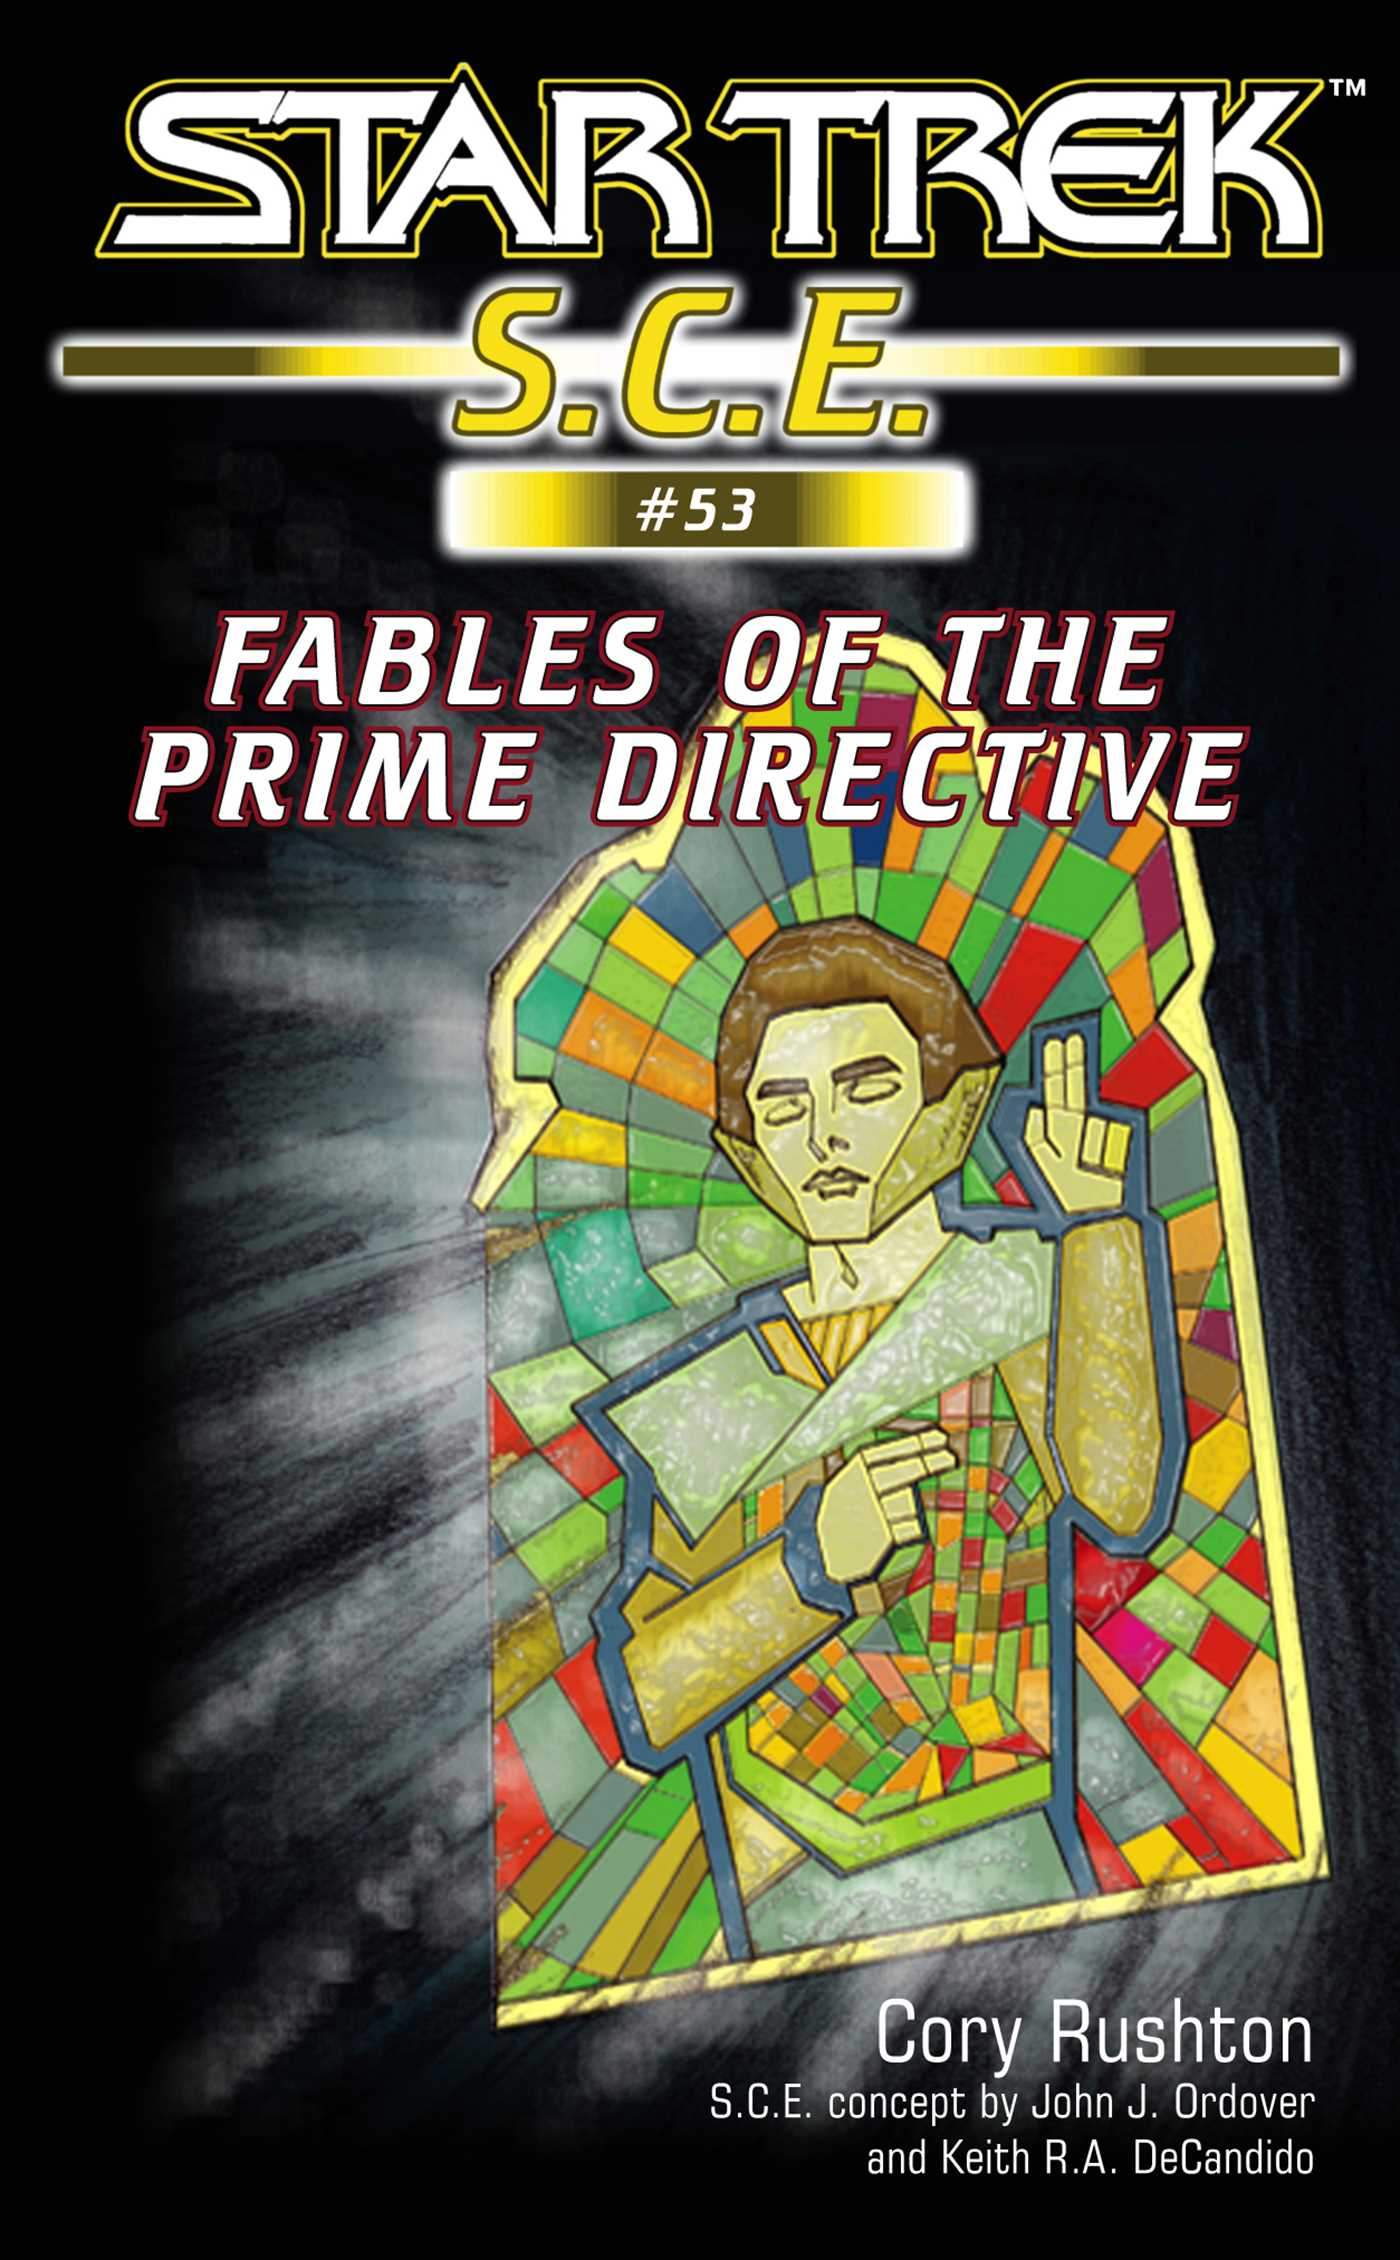 Star trek fables of the prime directive ebook by cory rushton star trek fables of the prime directive 9780743496834 hr fandeluxe Document